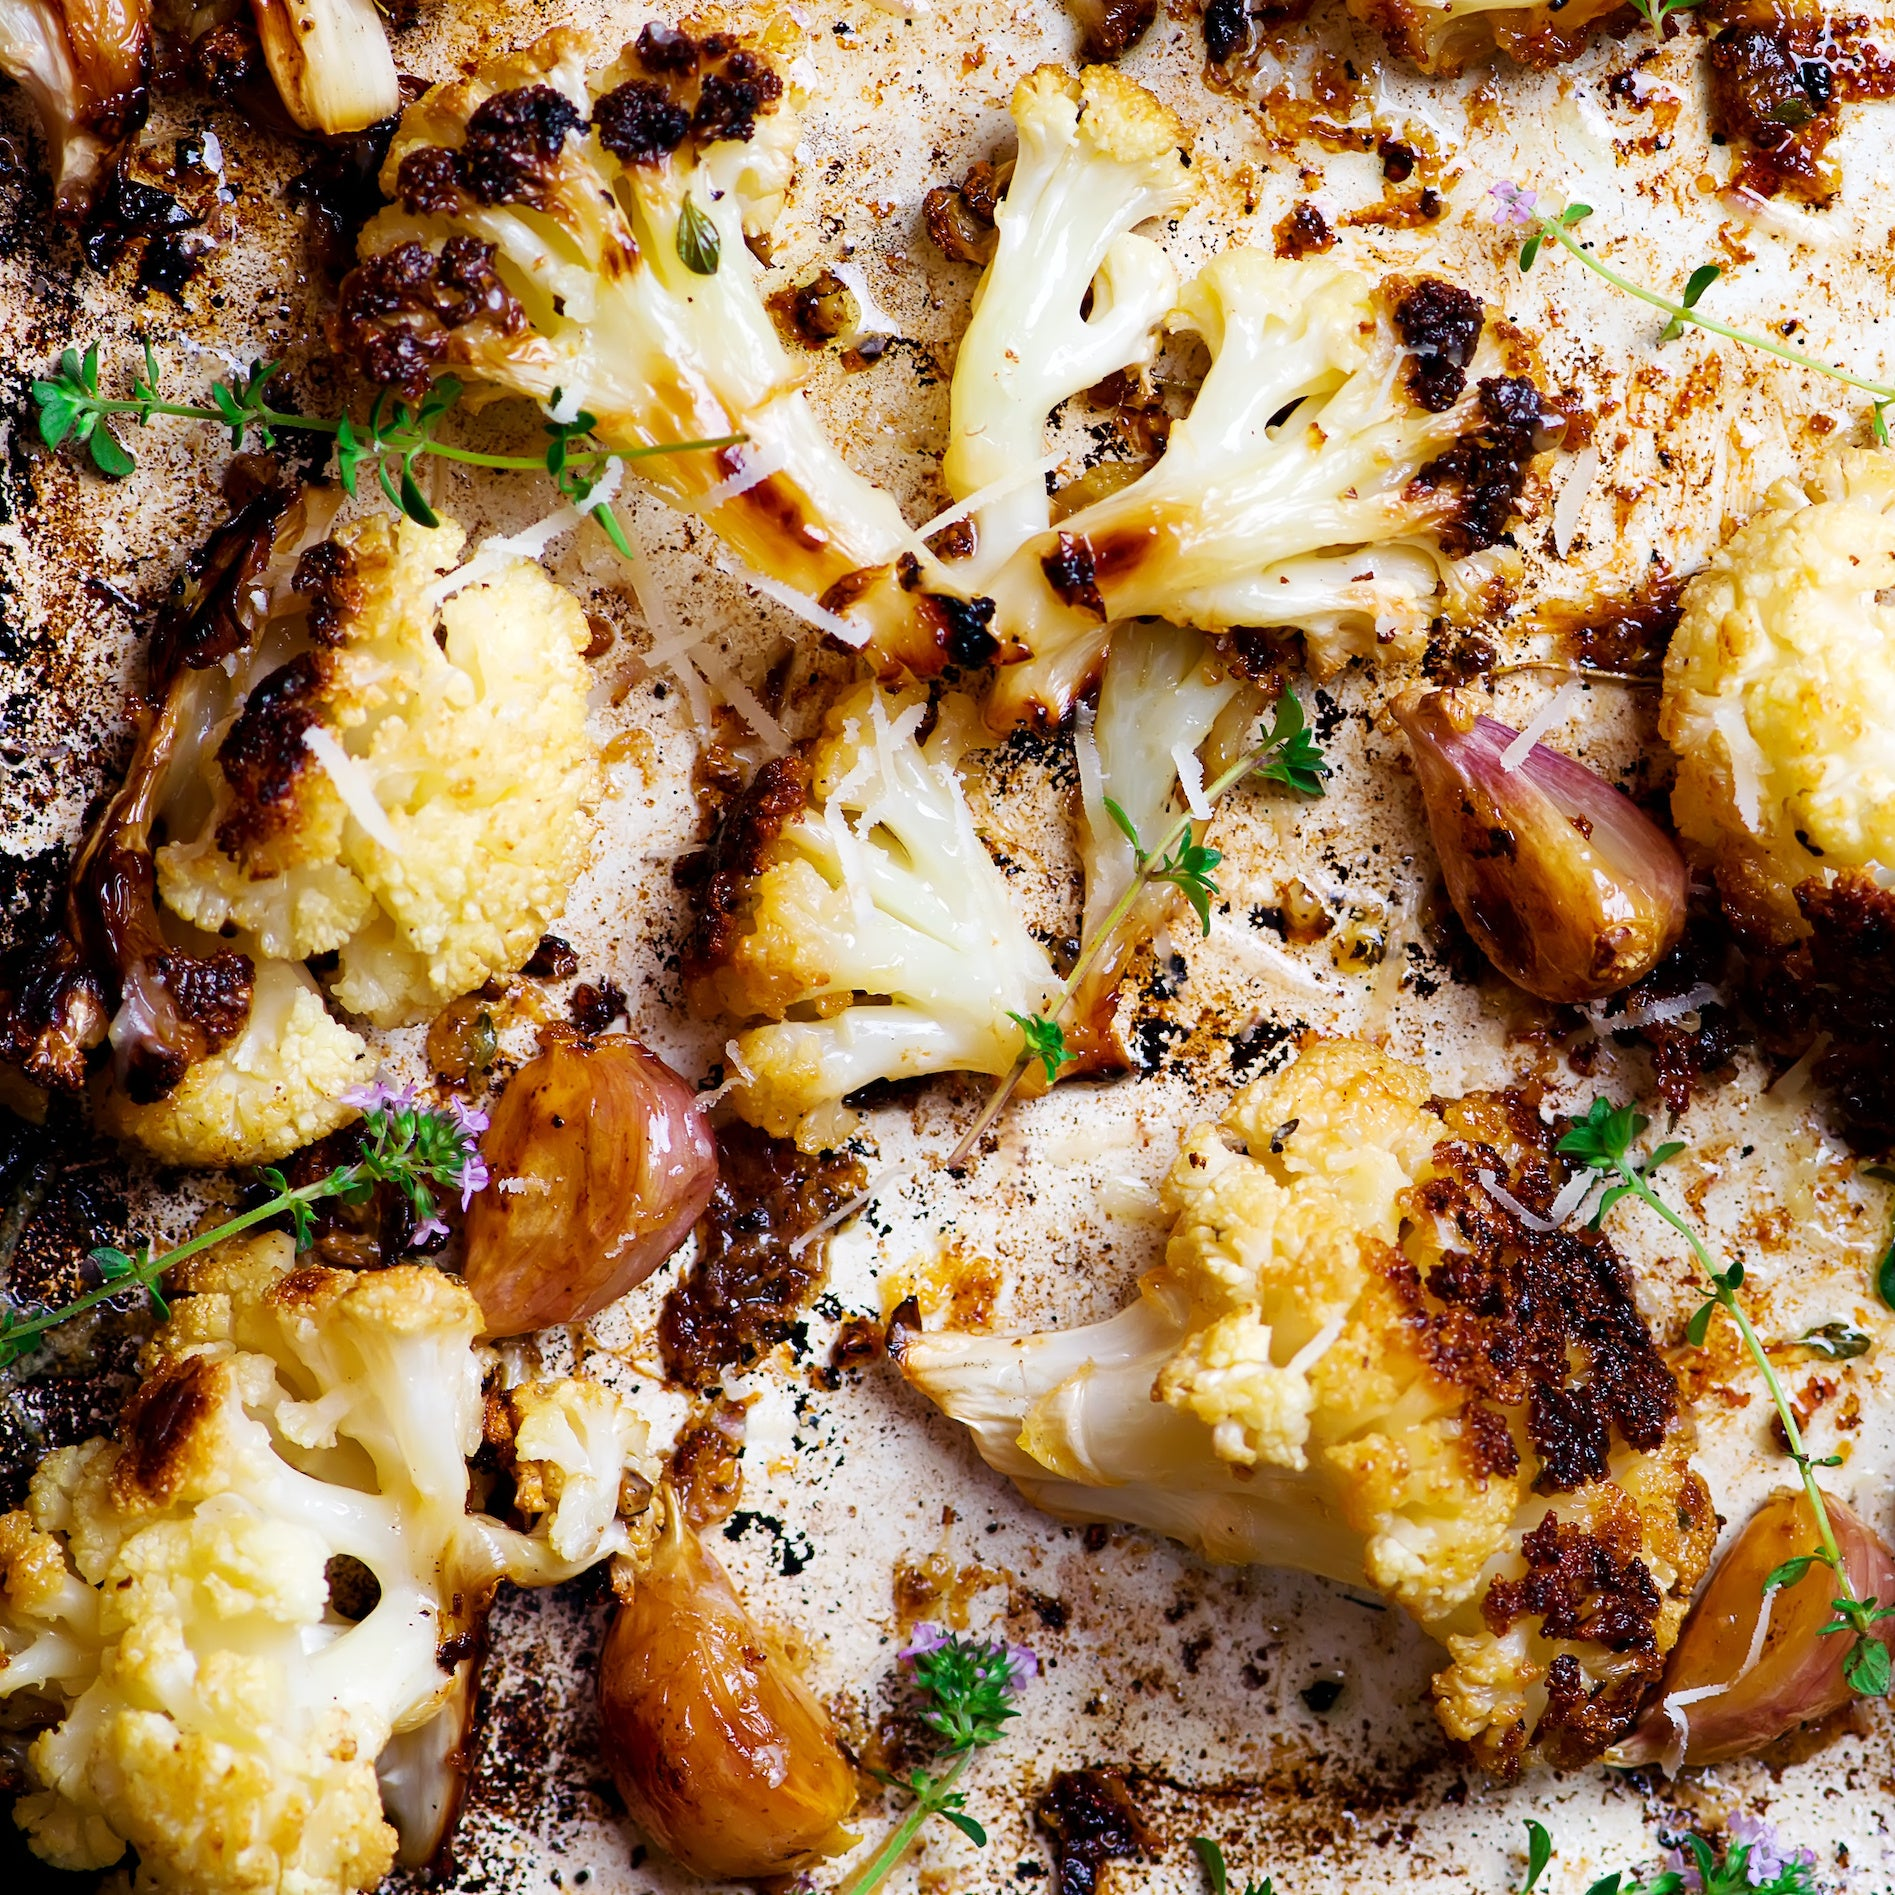 Roasted Cauliflower with Capital Heights Spice